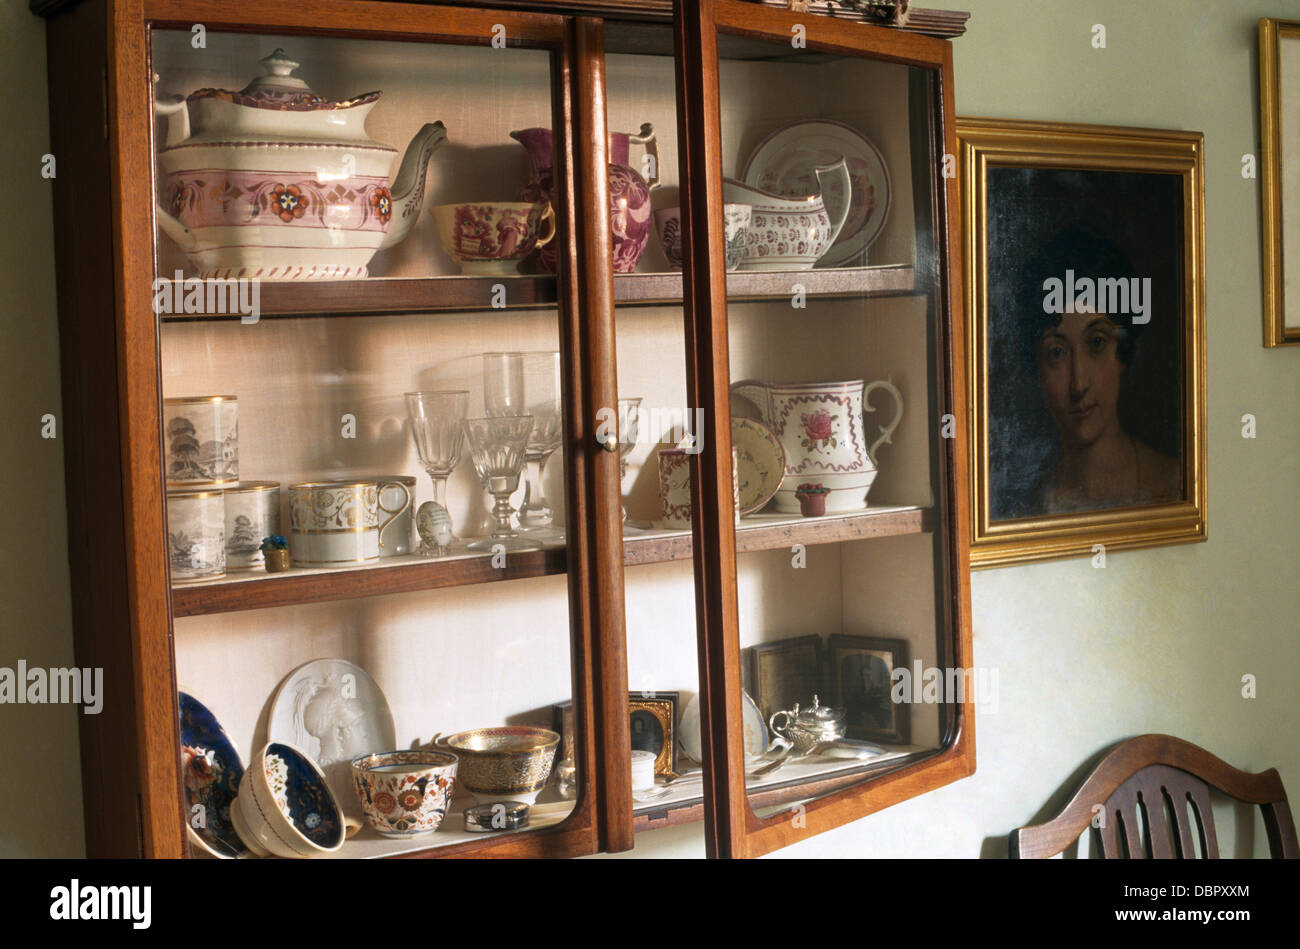 Close-up of antique china on shelves in old wall cupboard with glass doors - Close-up Of Antique China On Shelves In Old Wall Cupboard With Glass